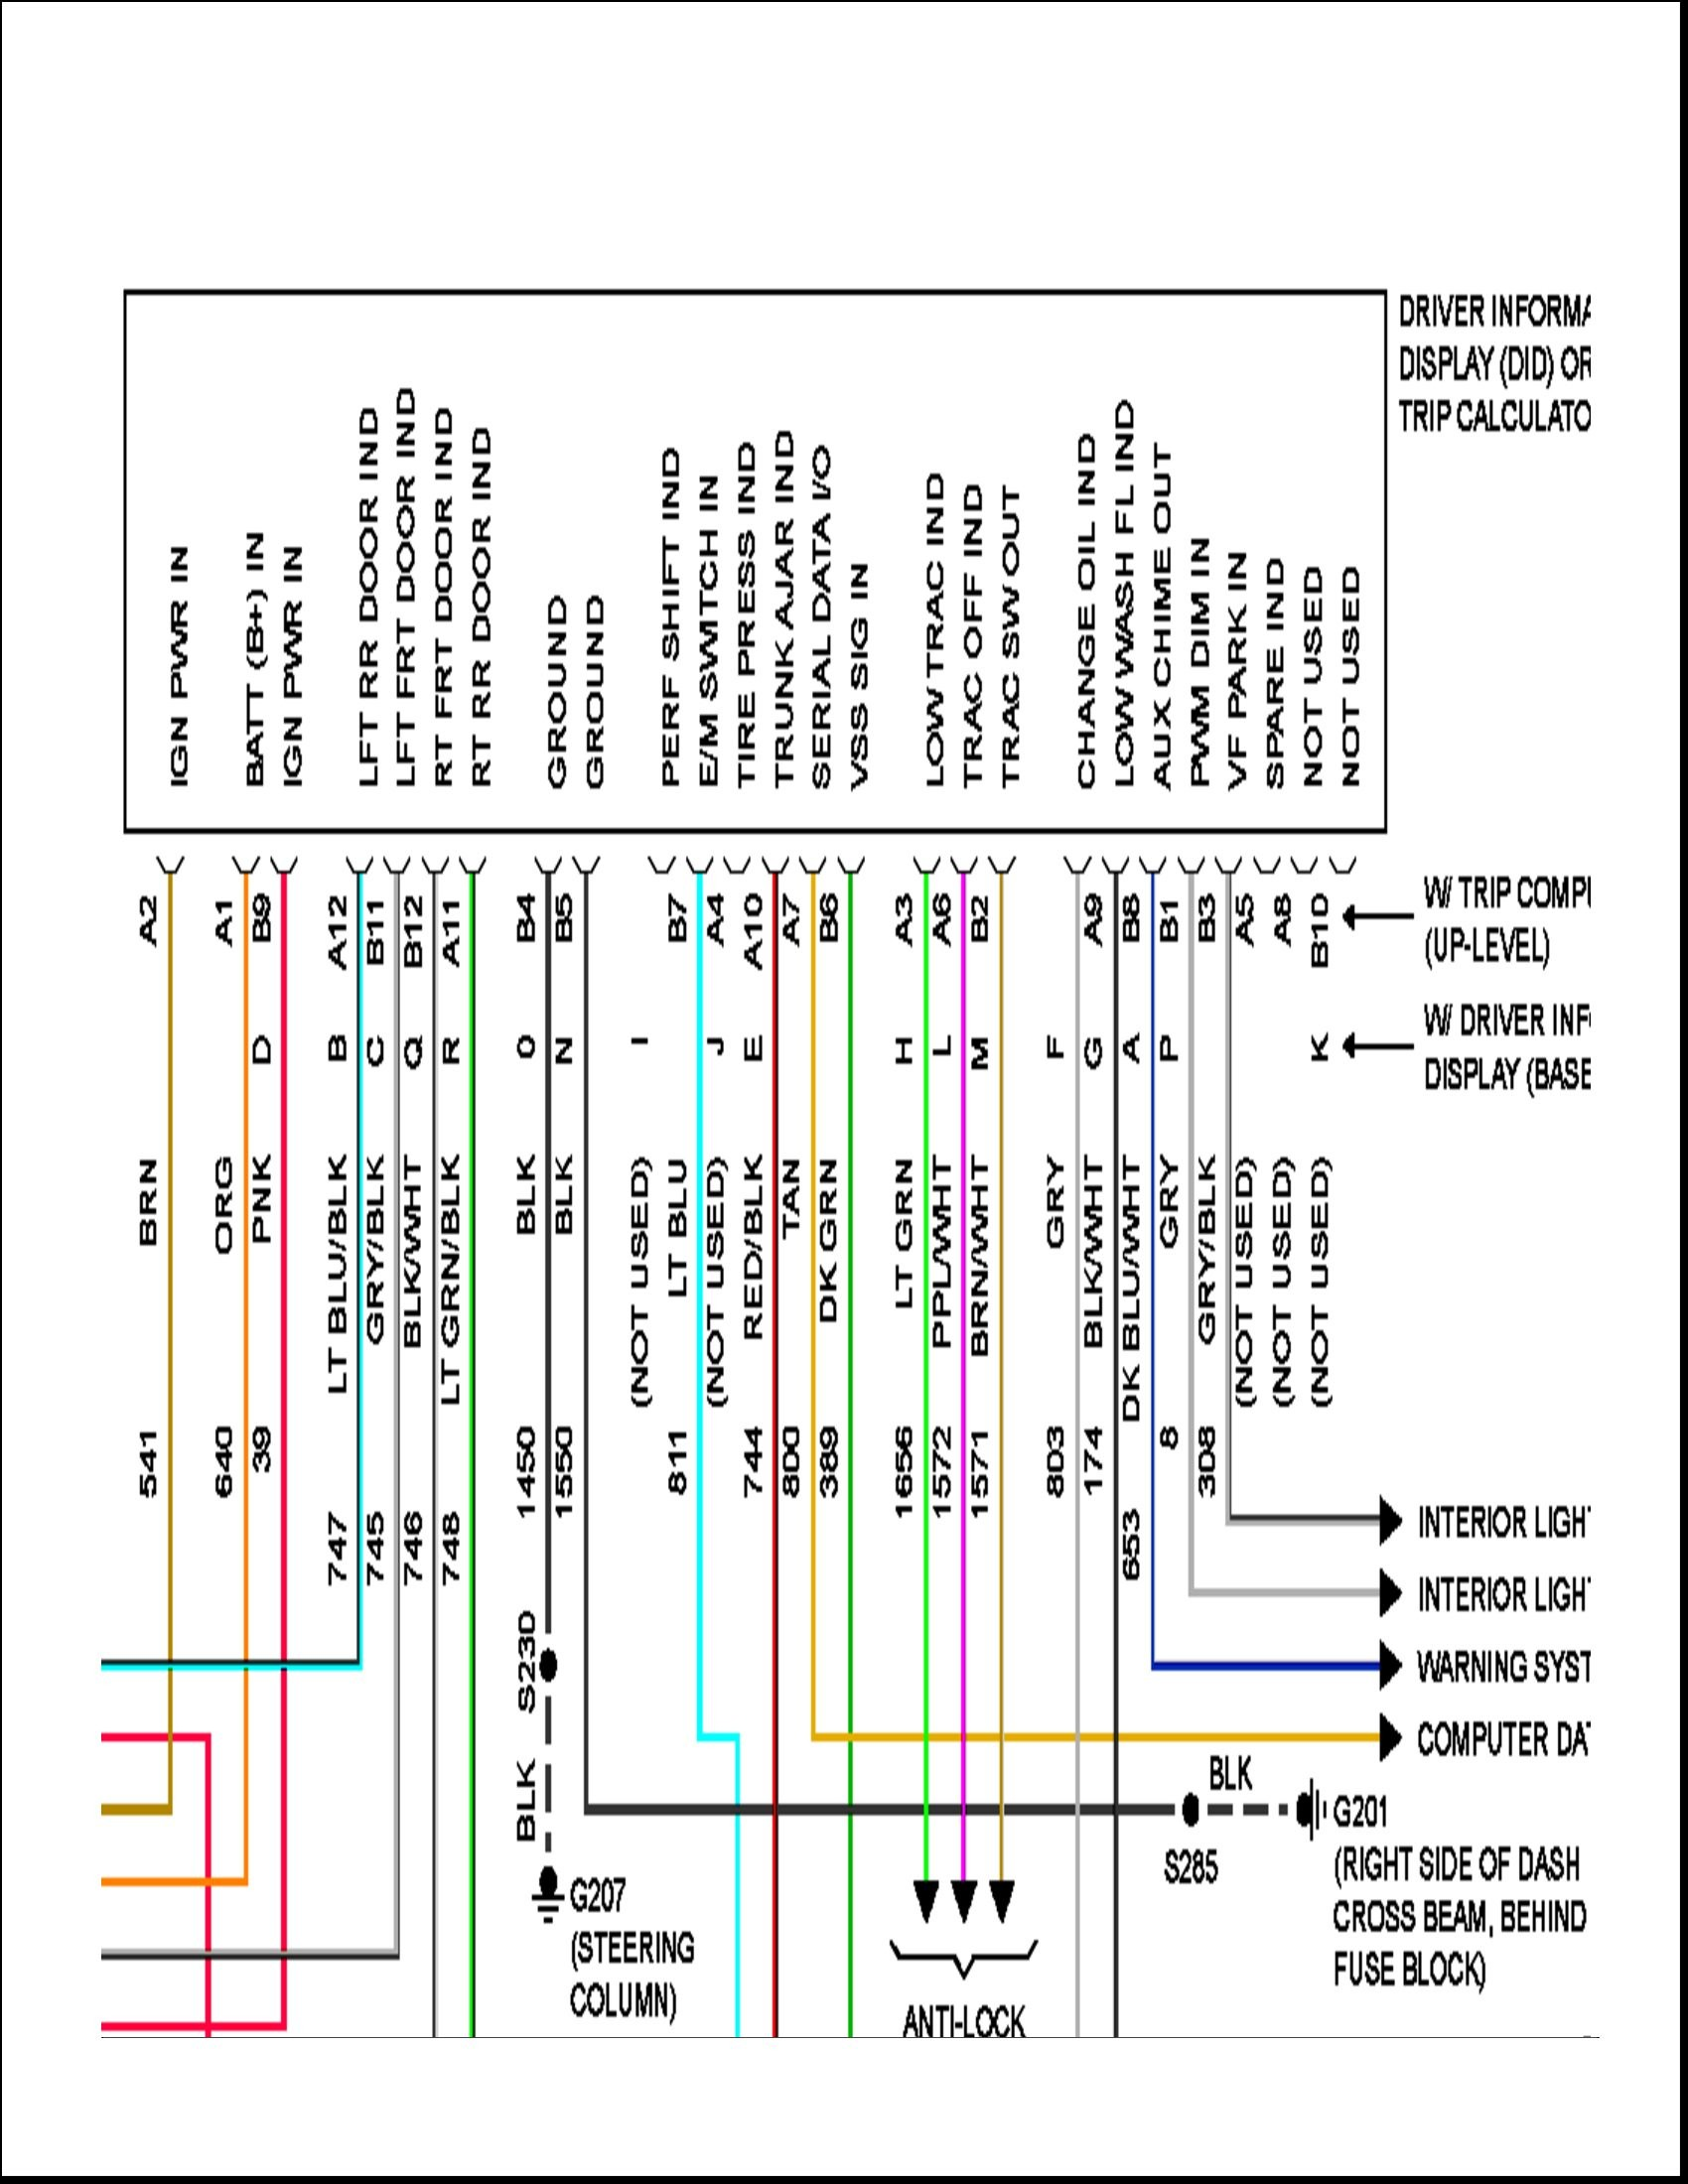 switch wiring diagram on 2006 pontiac grand am engine diagram wire rh javastraat co 2000 Dodge Durango Stereo Wiring Diagram Dodge Dakota Stereo Wiring Diagram